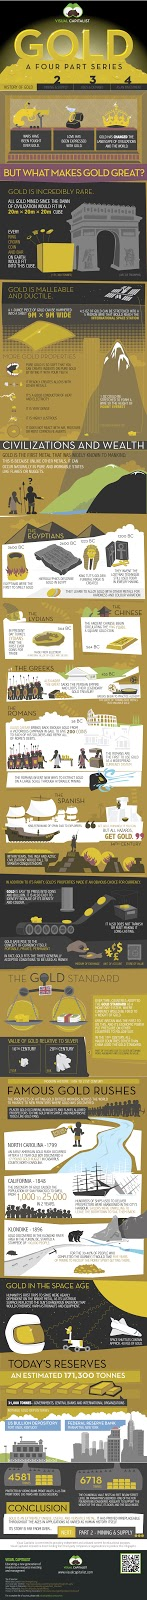 The Gold Series: The History of Gold